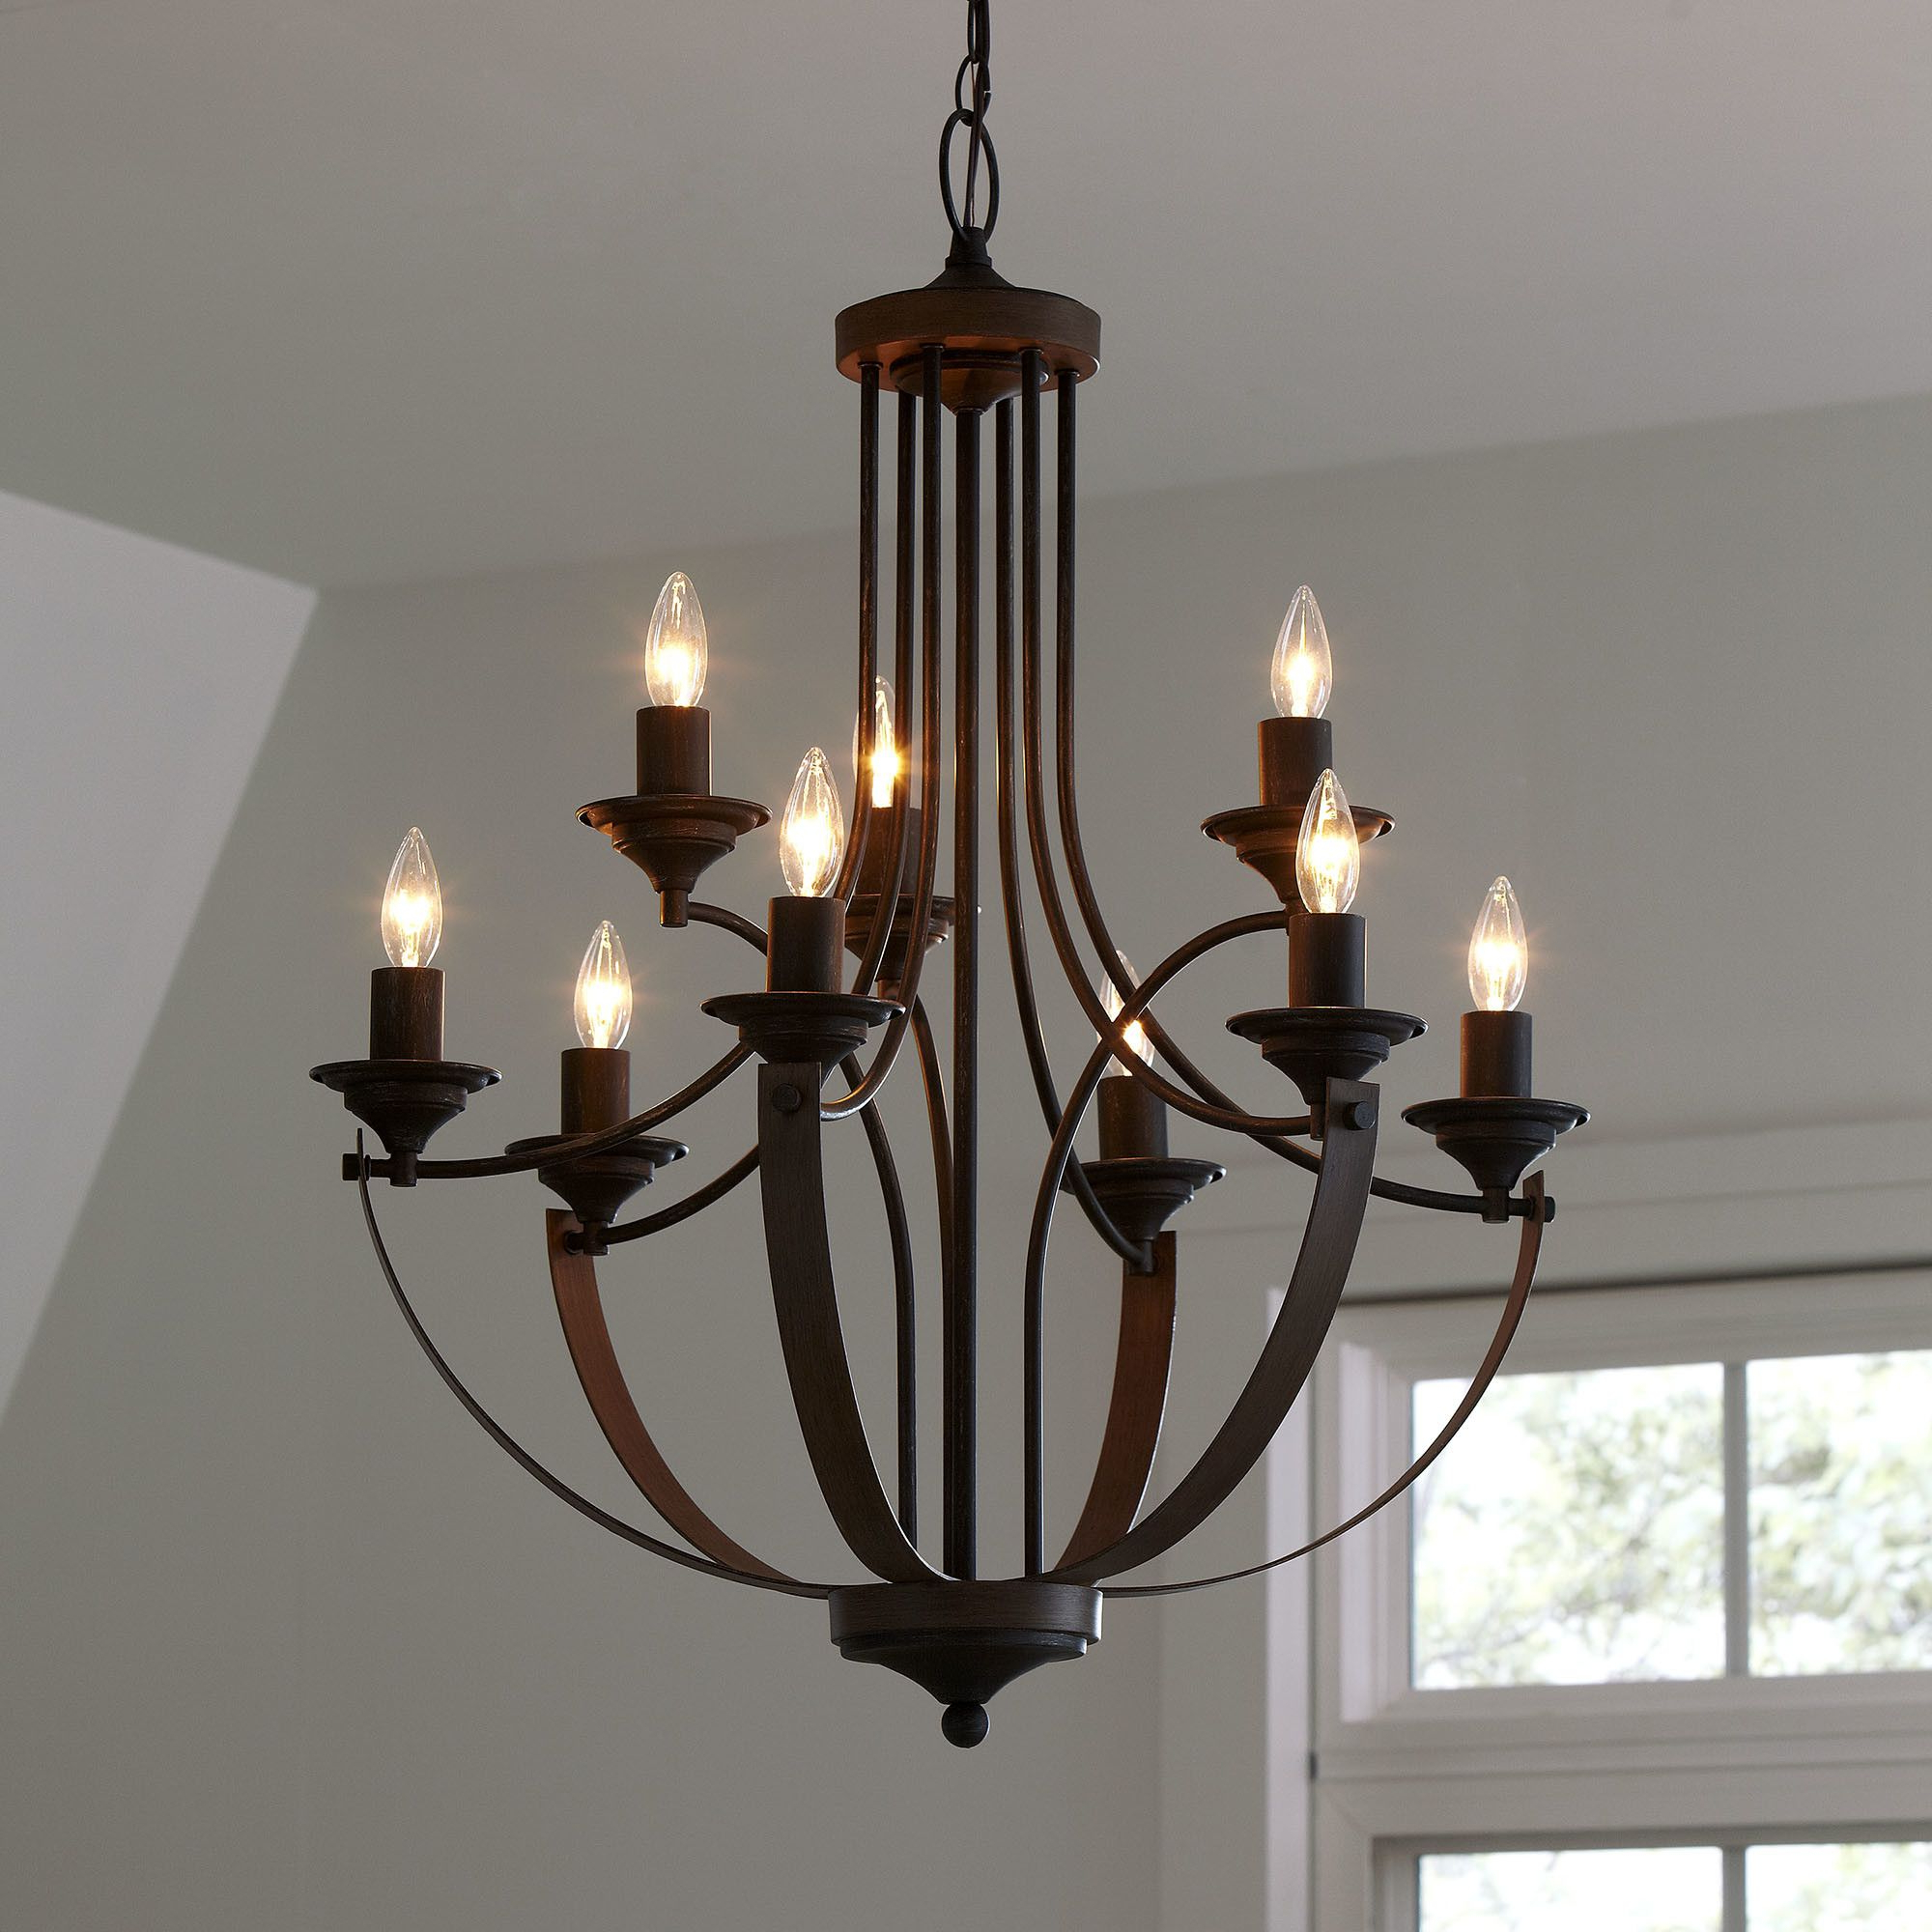 Rustic For Camilla 9 Light Candle Style Chandeliers (View 17 of 25)